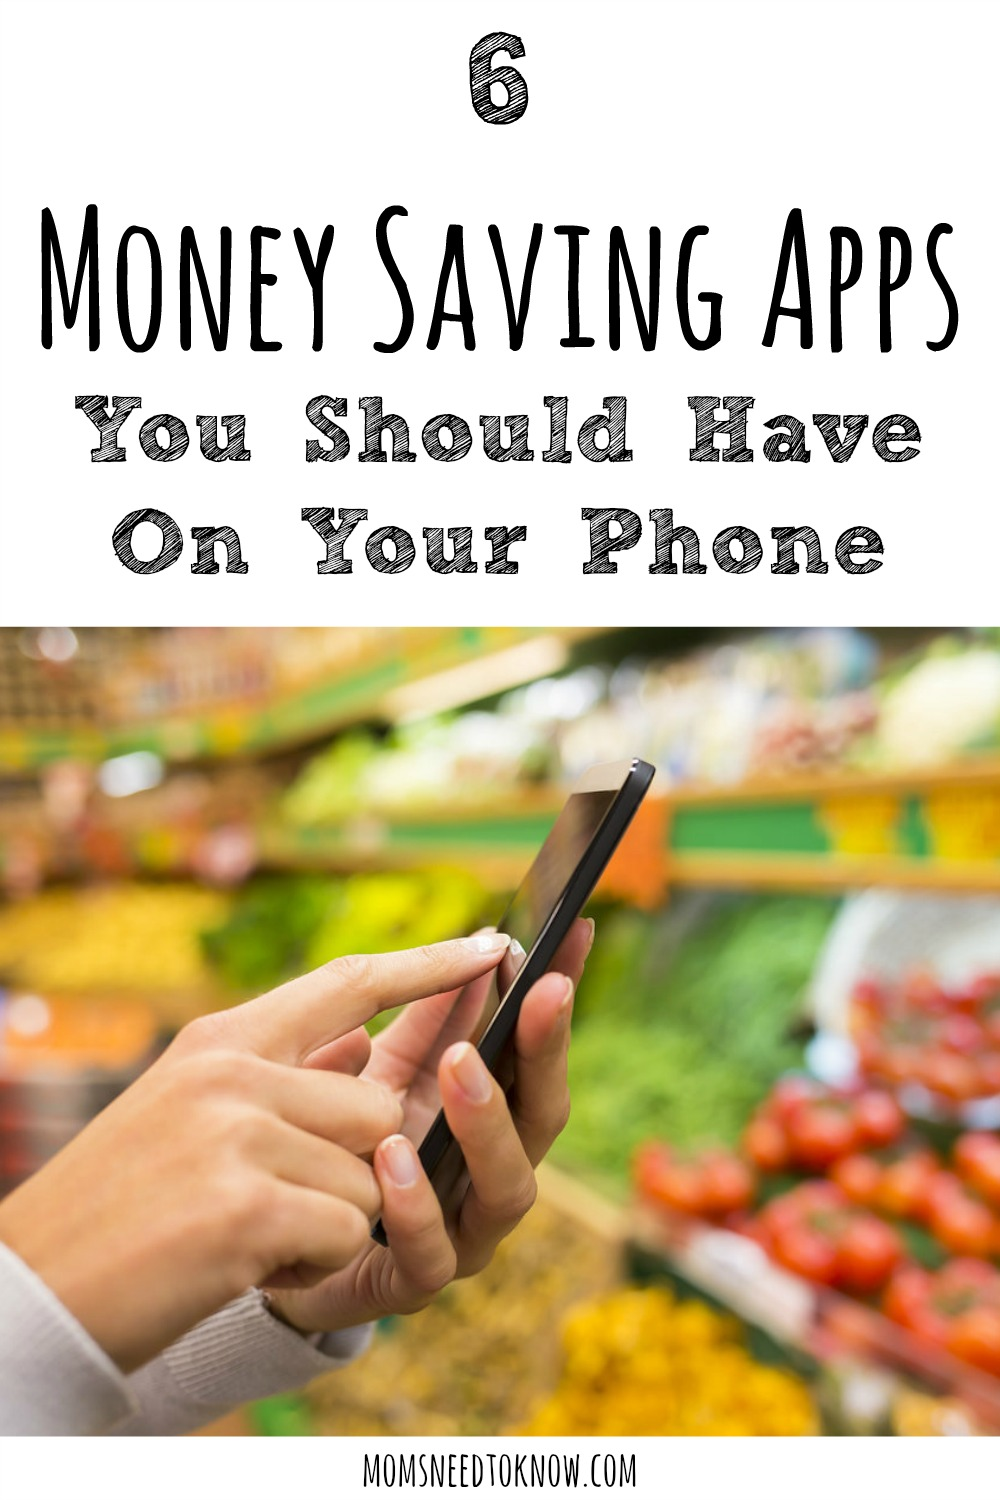 6 Money Saving Apps You Should Have On Your Phone